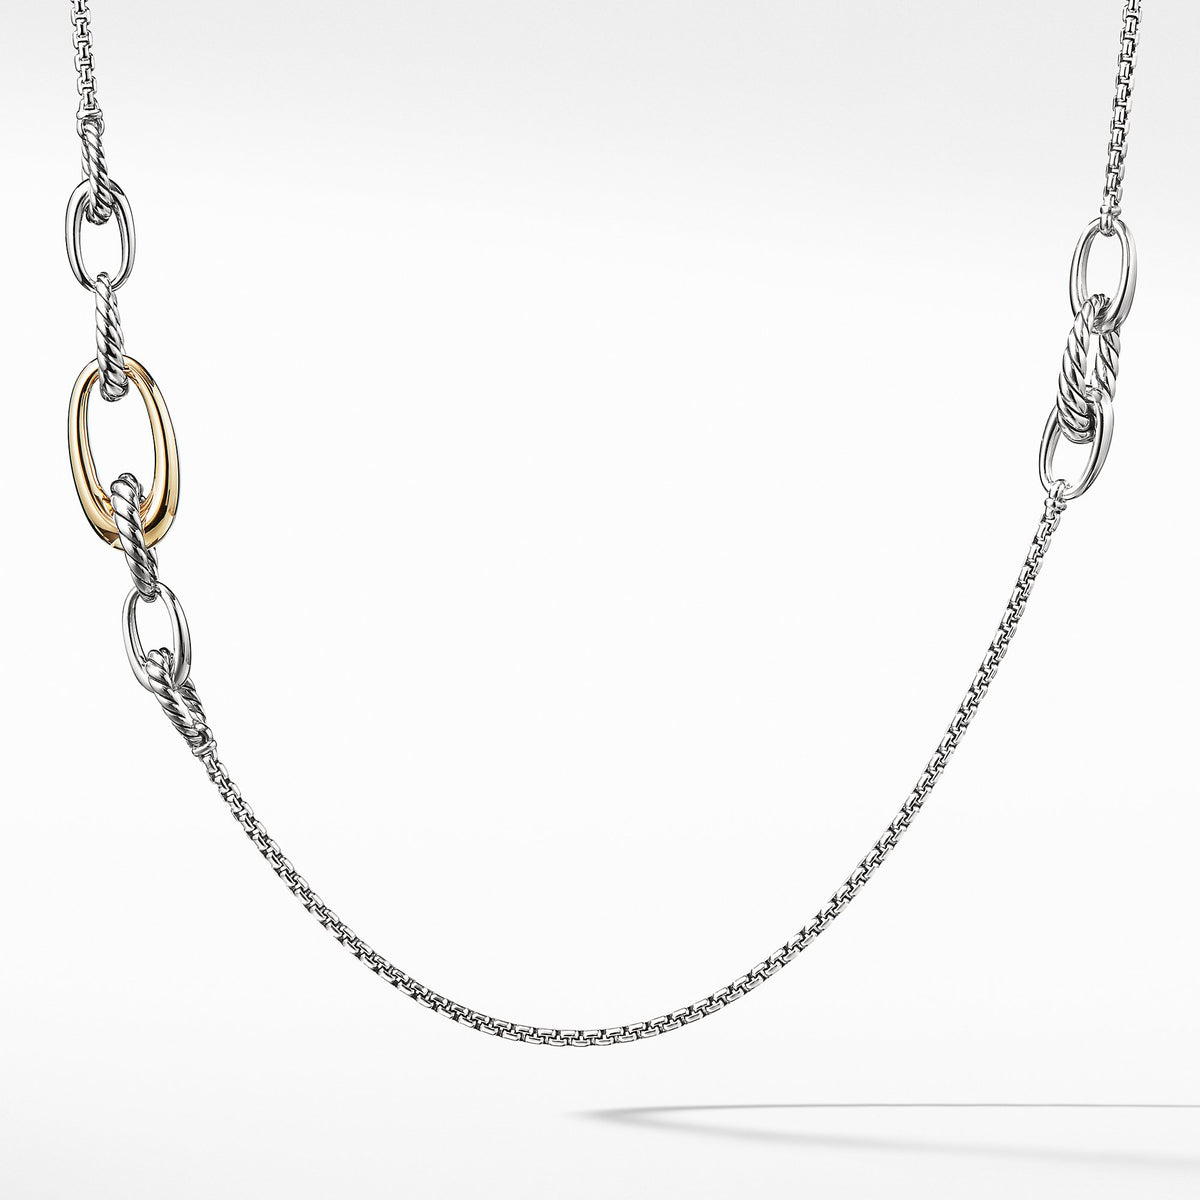 Pure Form Chain Station Necklace with 18K Gold